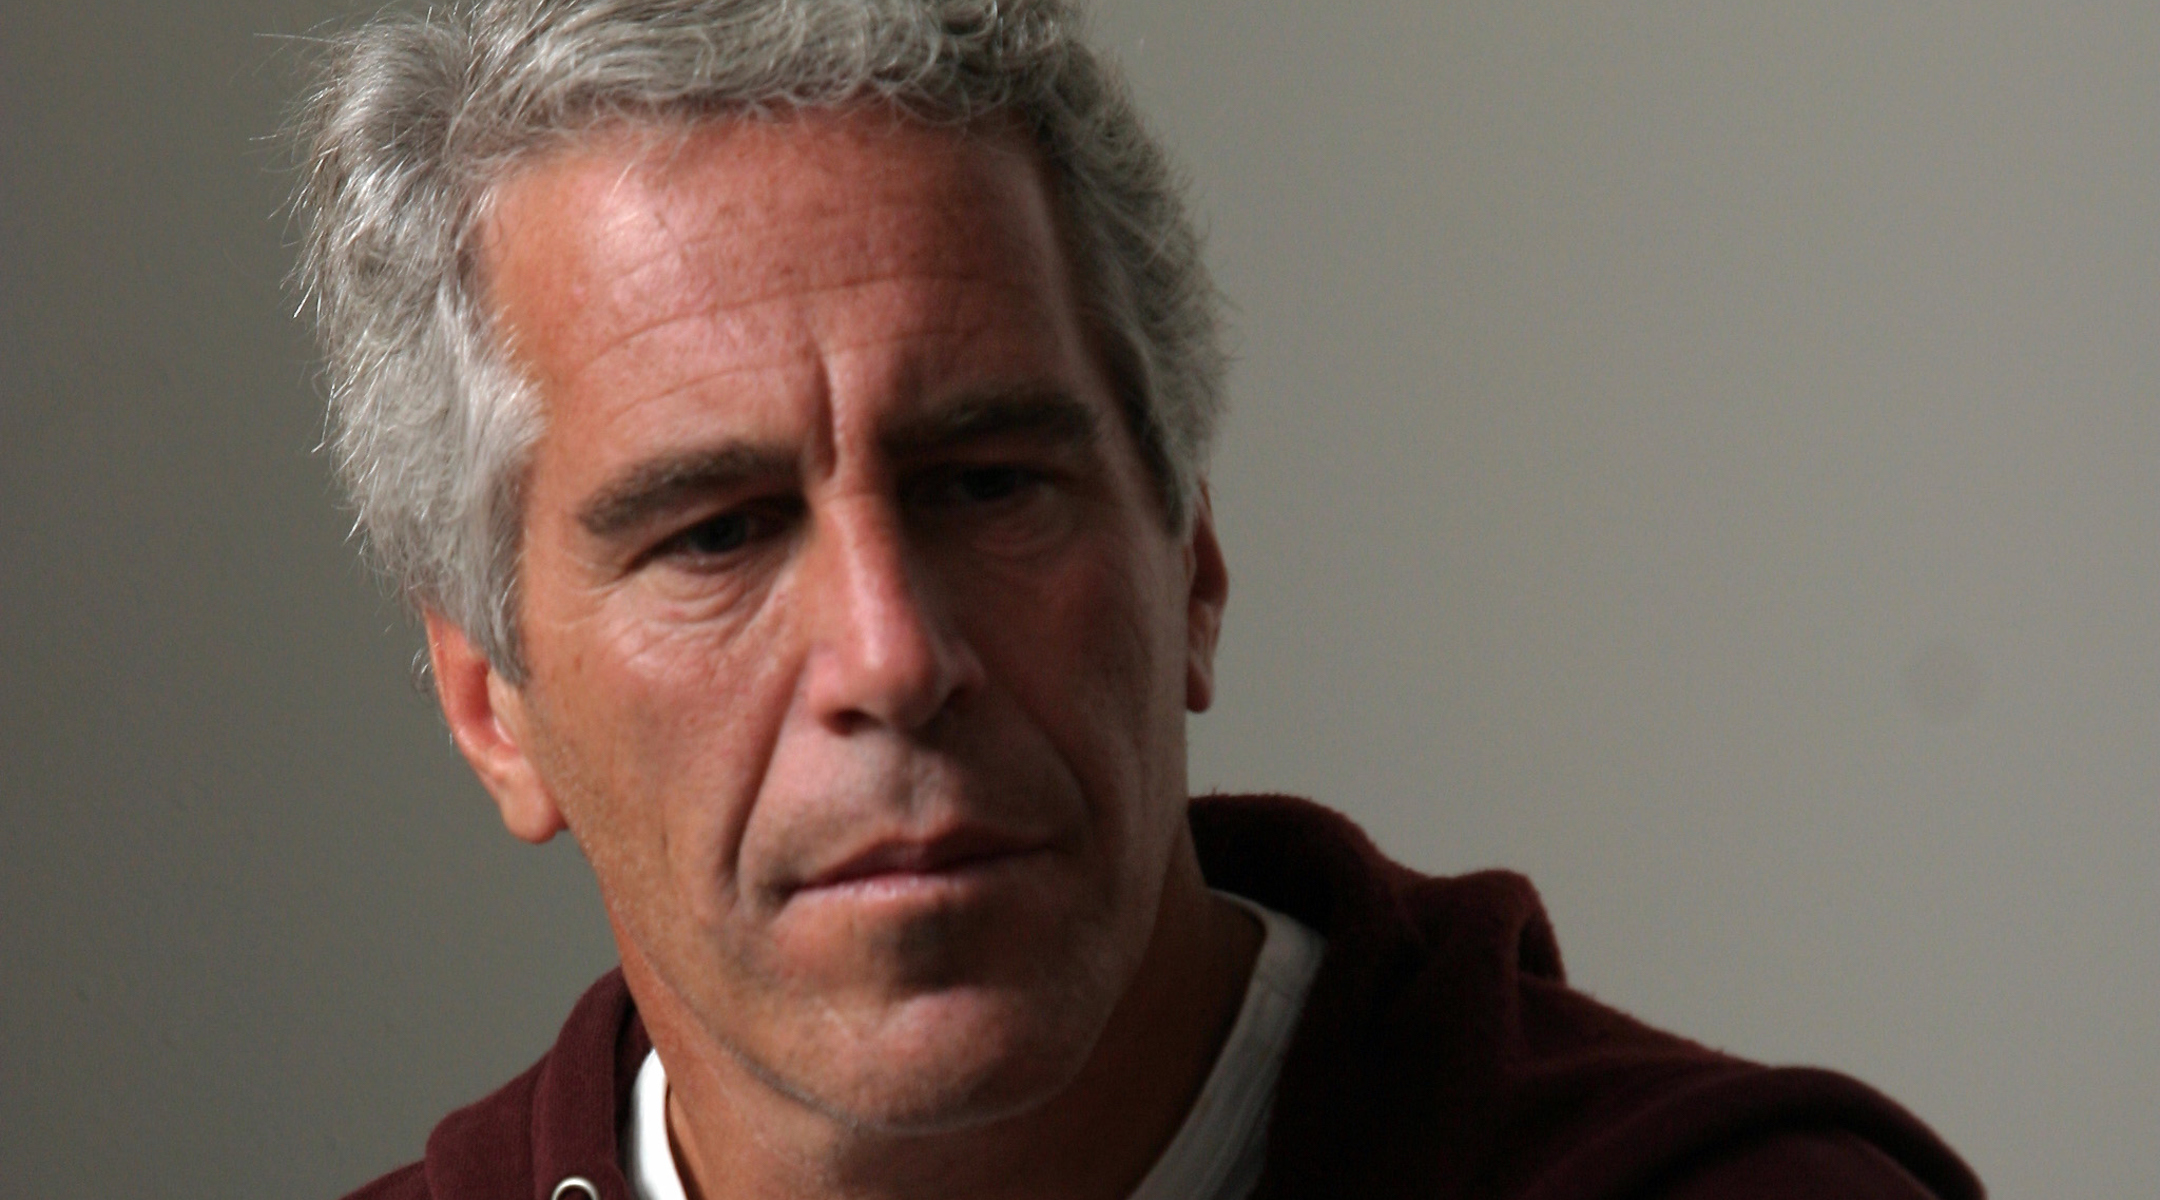 Jeffrey Epstein in Cambridge, Mass., in 2004. Officials say he hanged himself in his jail cell. (Rick Friedman/Rick Friedman Photography/Corbis via Getty Images)